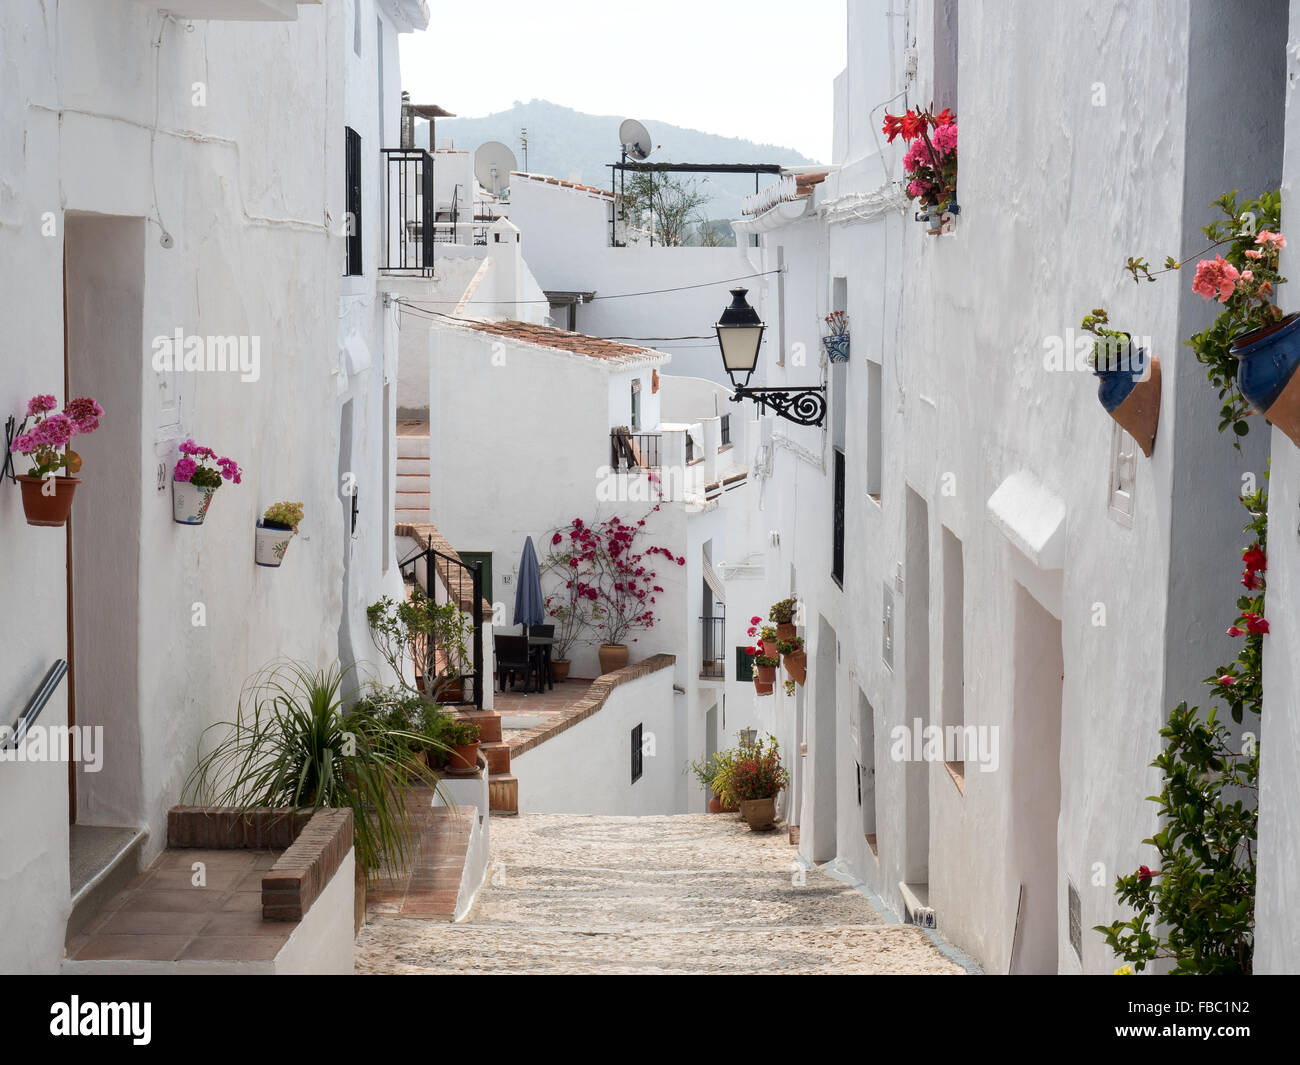 Street in Frigiliana a white town near Nerja, Costa Del Sol, Andalusia, Spain, - Stock Image